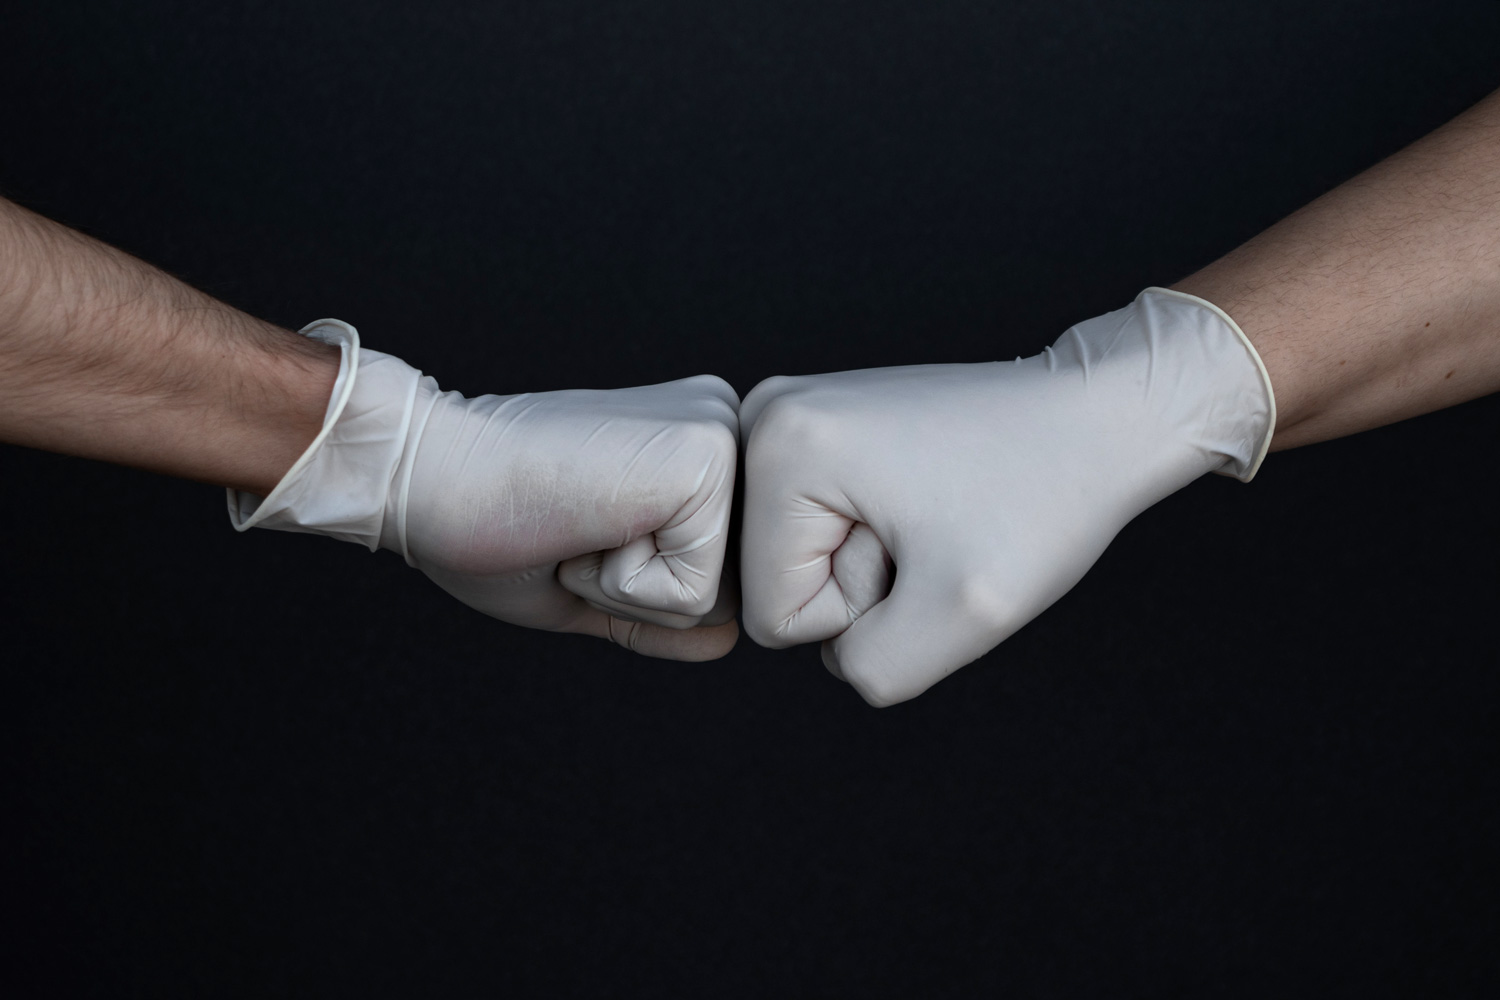 Photo of two gloved hands in fists touching each other.